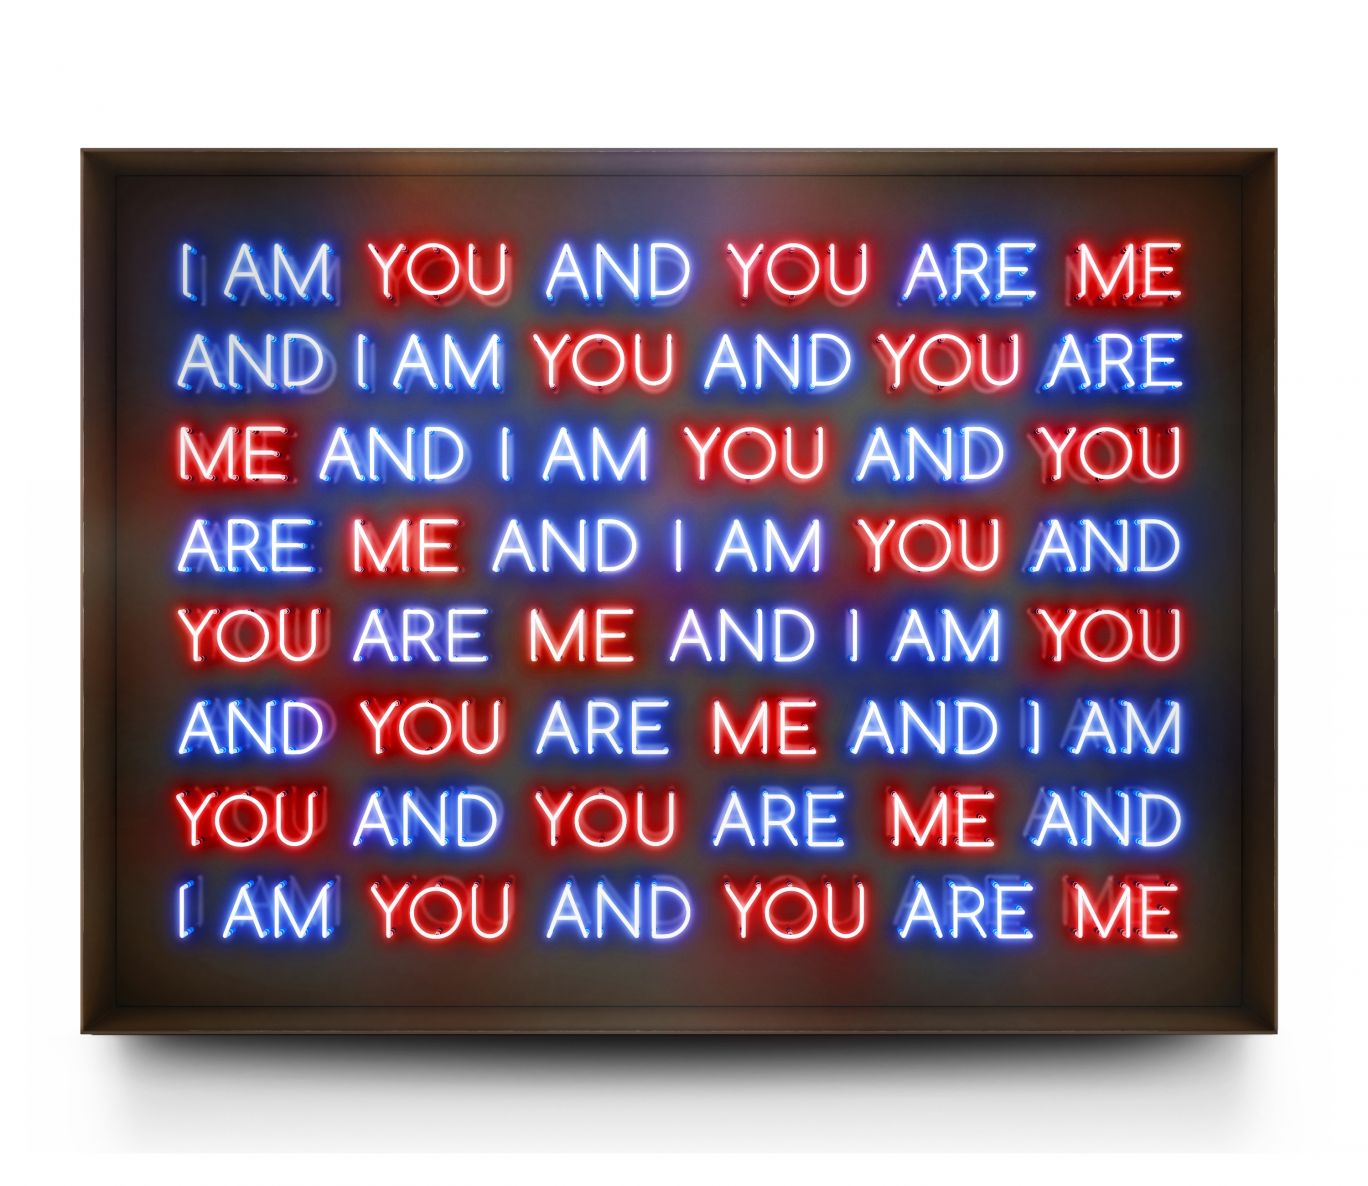 I Am You and You Are Me by David Drebin